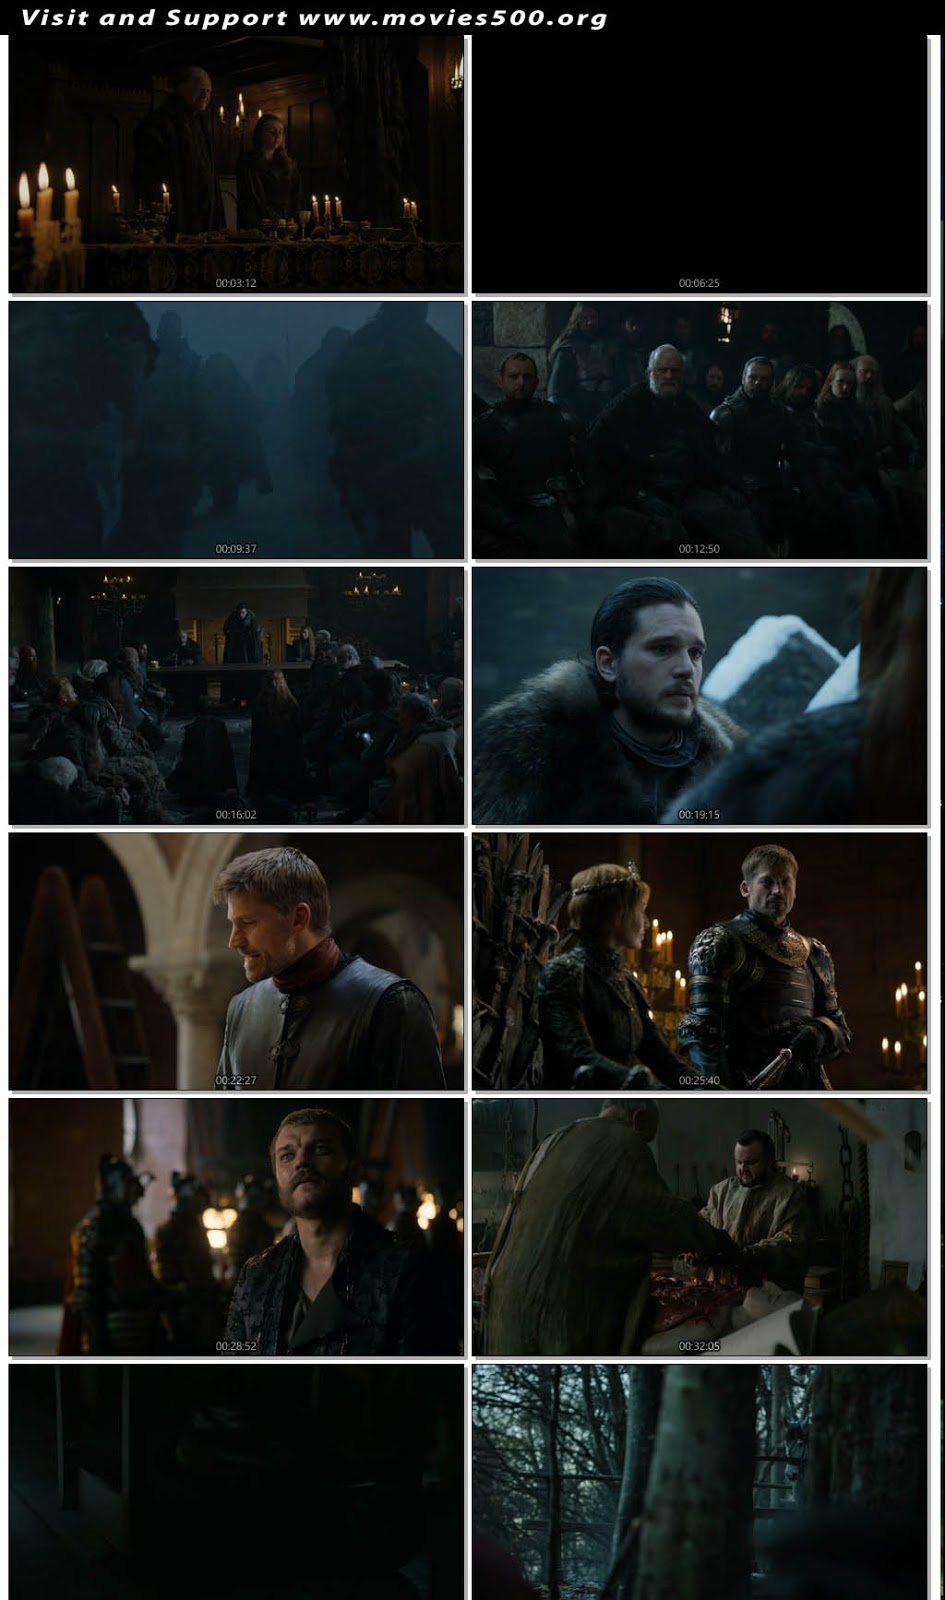 Game of Thrones 2017 Season 07 Episode 01 HD Download at movies500.org